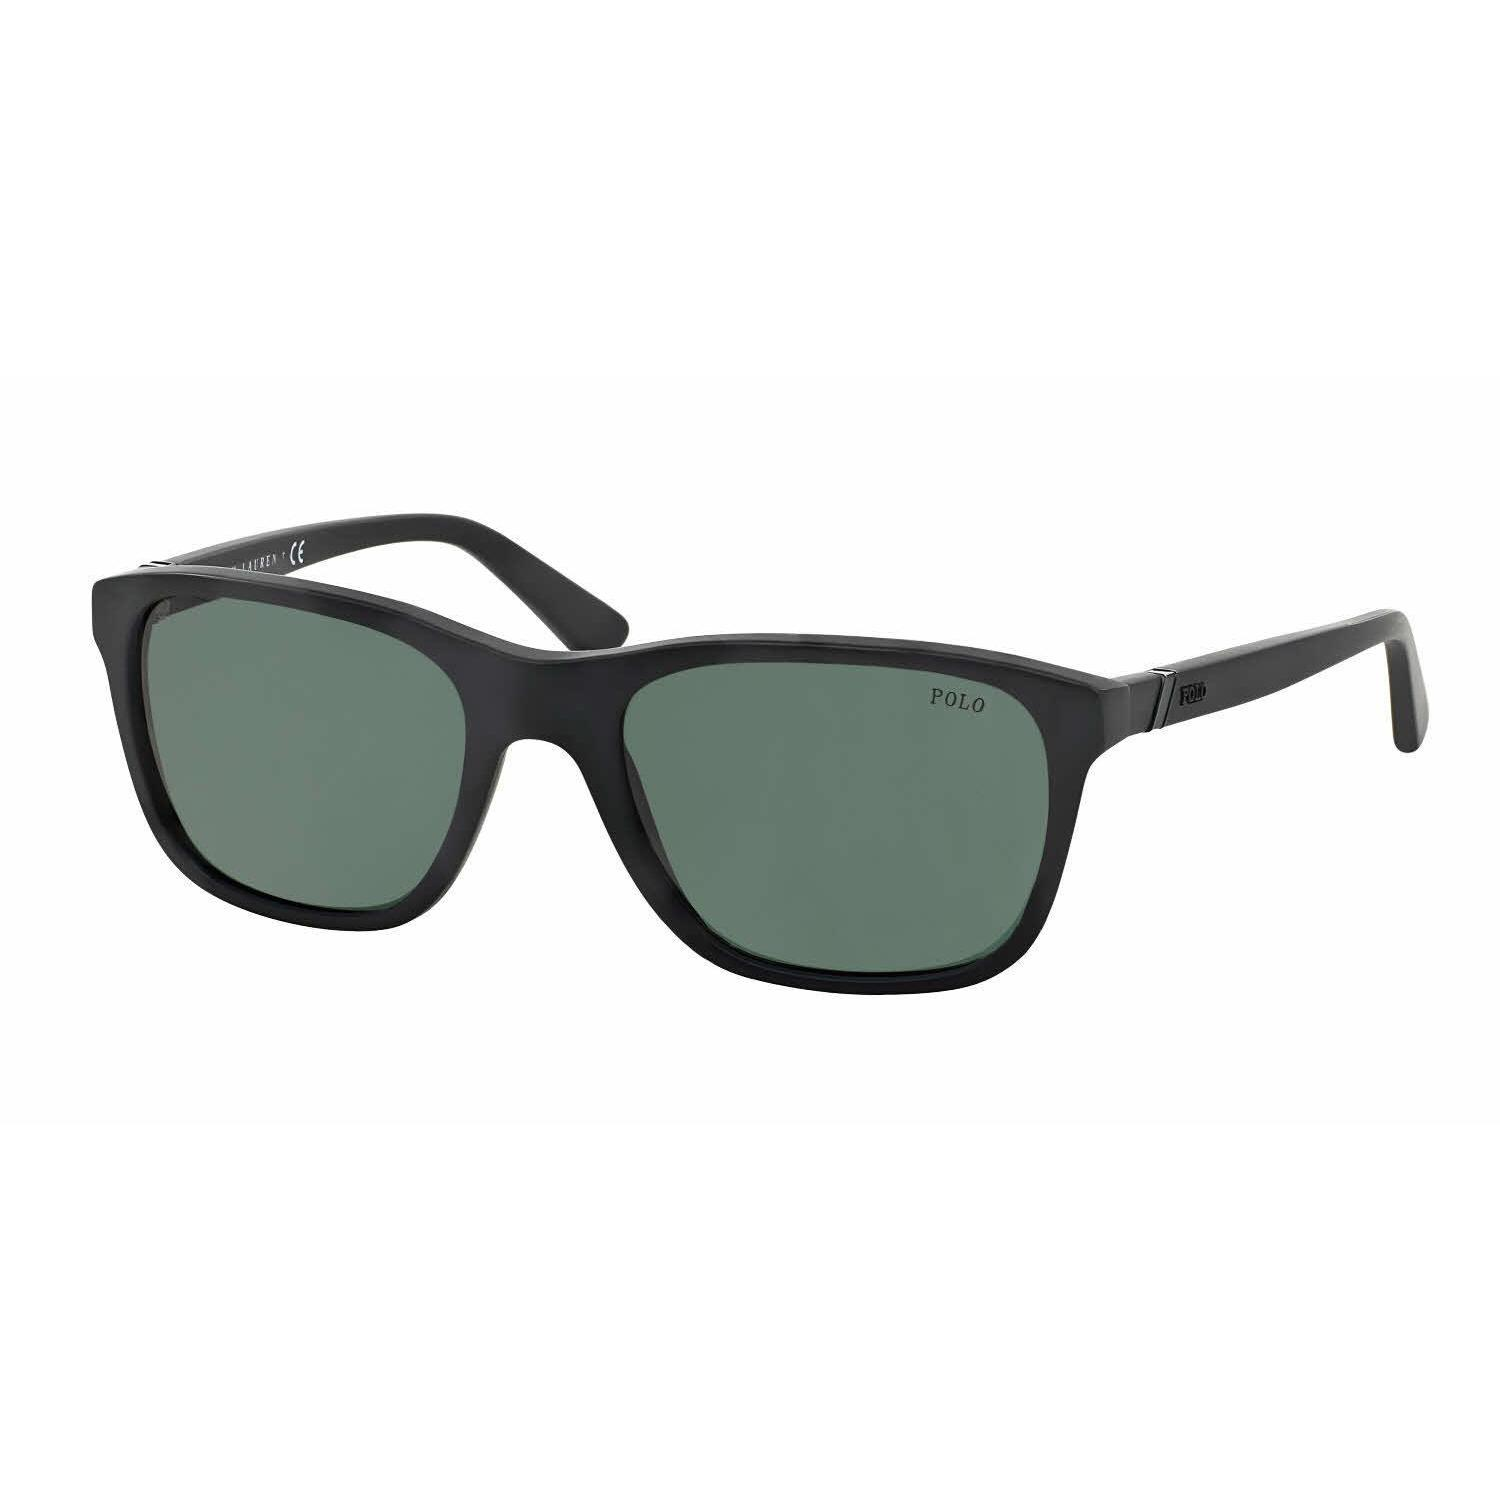 75a932954ad7 Shop Polo Mens PH4085 528471 Black Plastic Square Sunglasses - Green - Free  Shipping Today - Overstock - 13471615